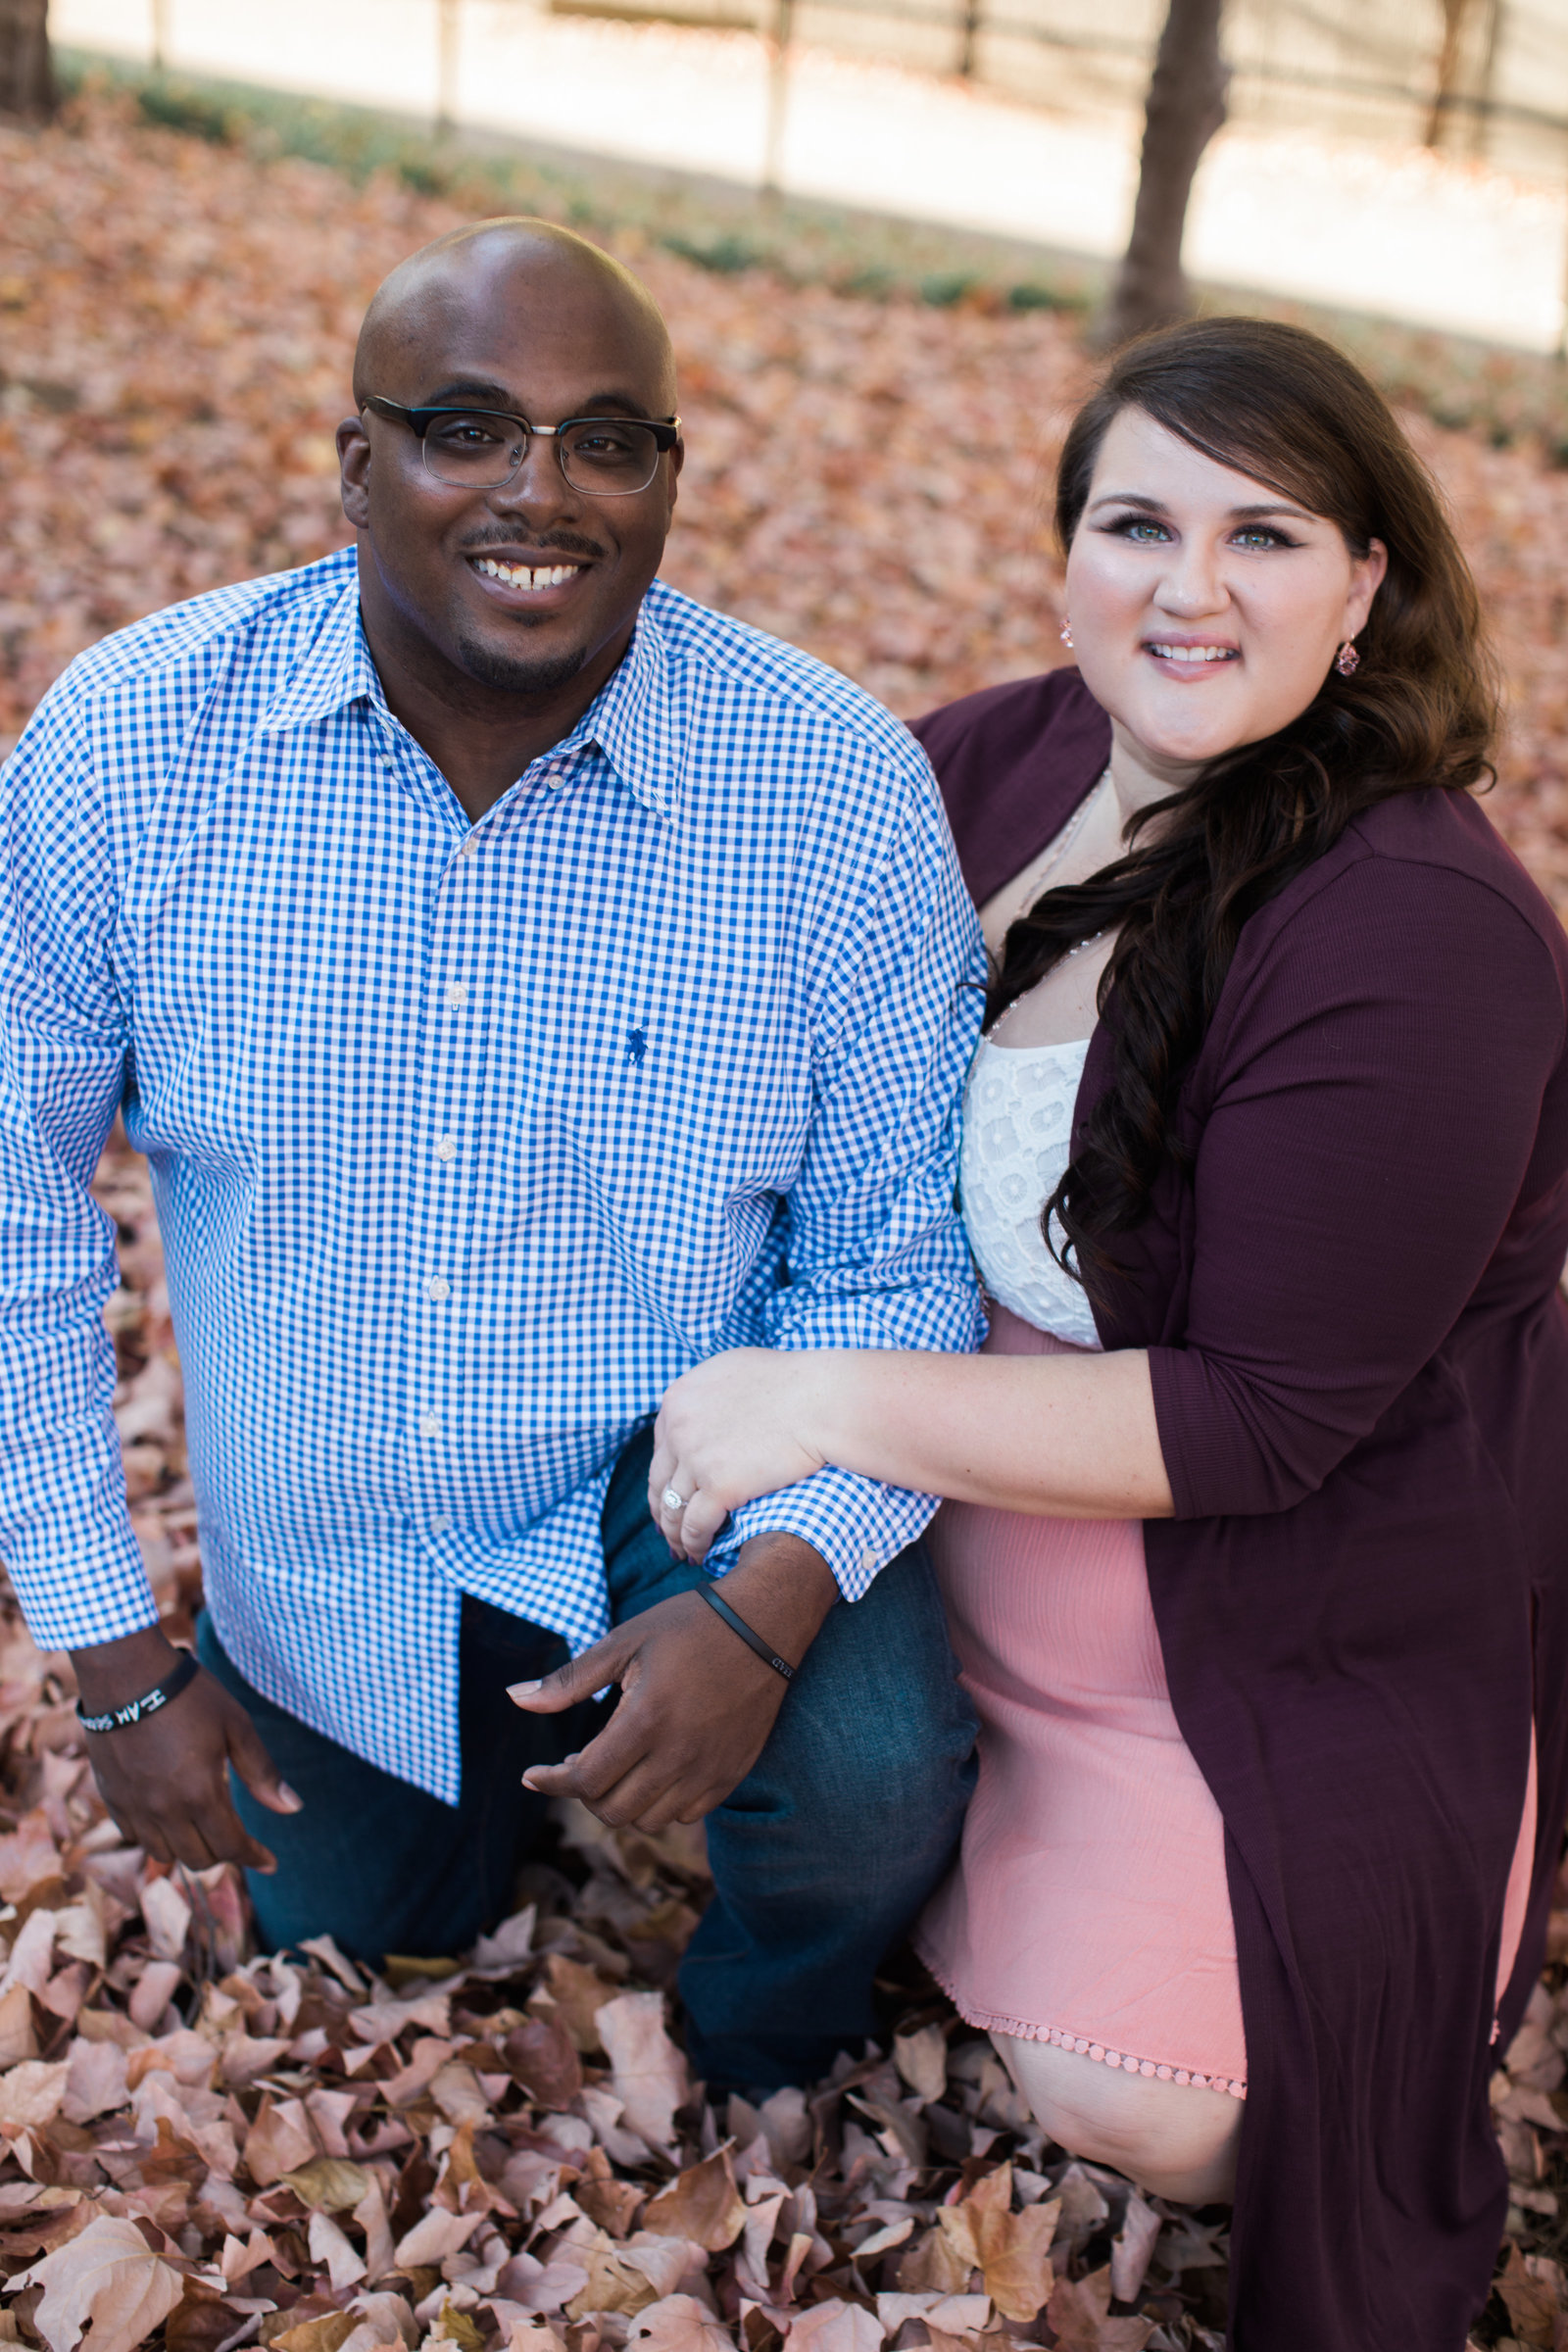 Nashville Engagement Photographer | Frozen Exposure Photo & Cinema